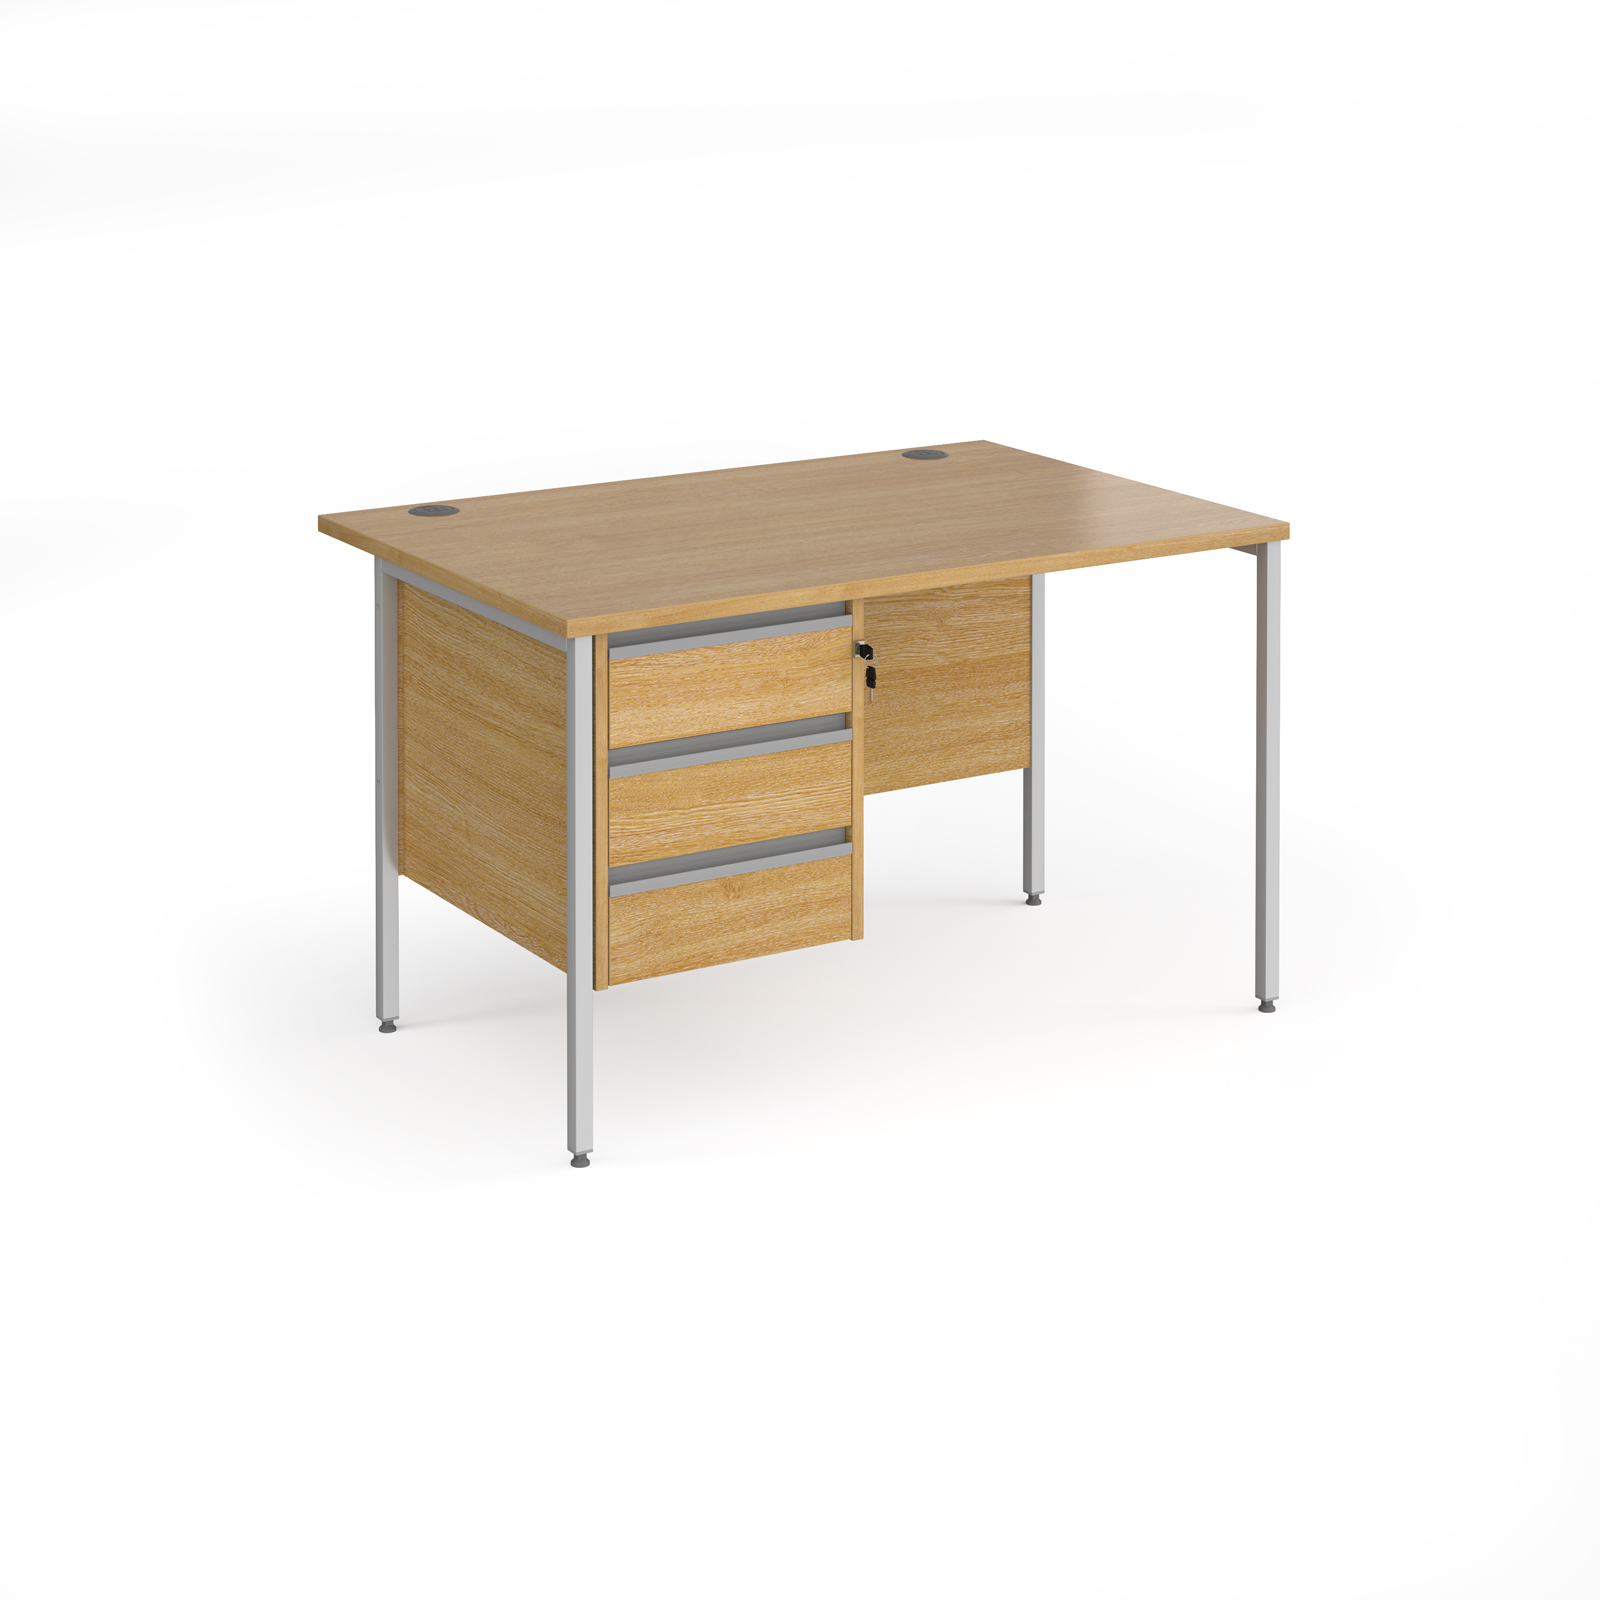 Rectangular Desks Contract 25 straight desk with 3 drawer pedestal and silver H-Frame leg 1200mm x 800mm - oak top